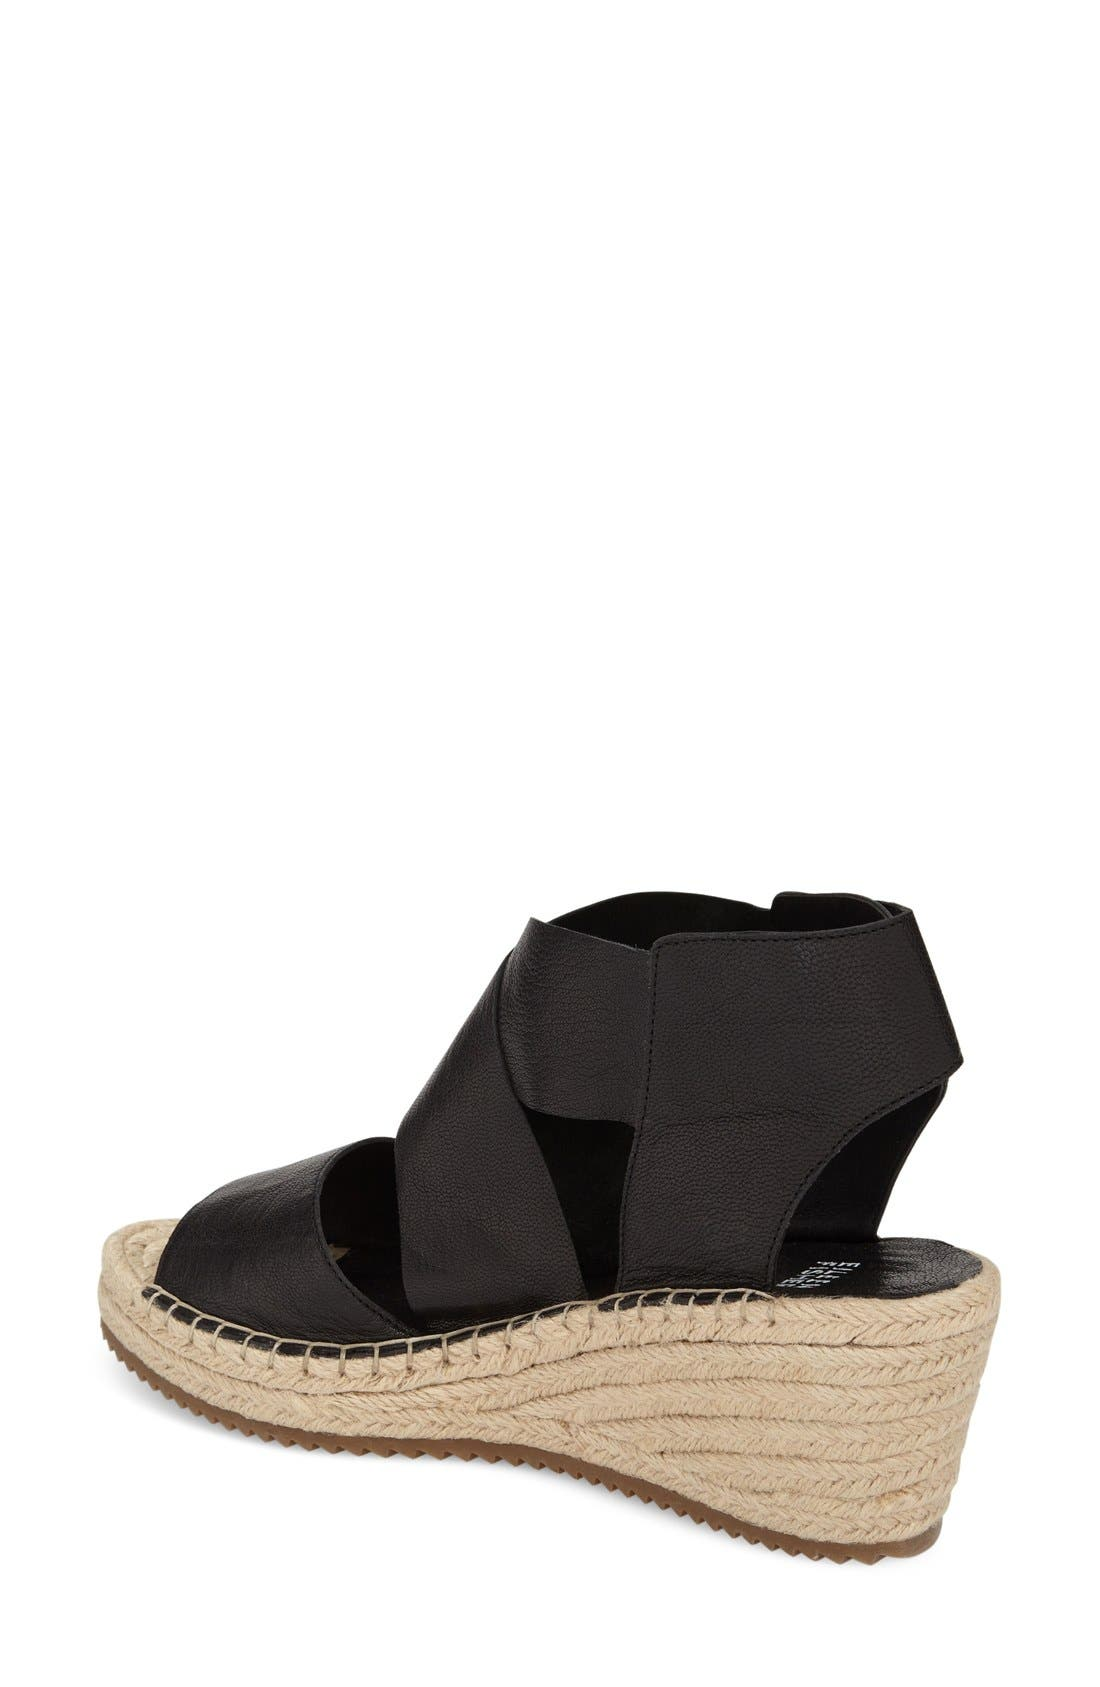 'Willow' Espadrille Wedge Sandal,                             Alternate thumbnail 3, color,                             001